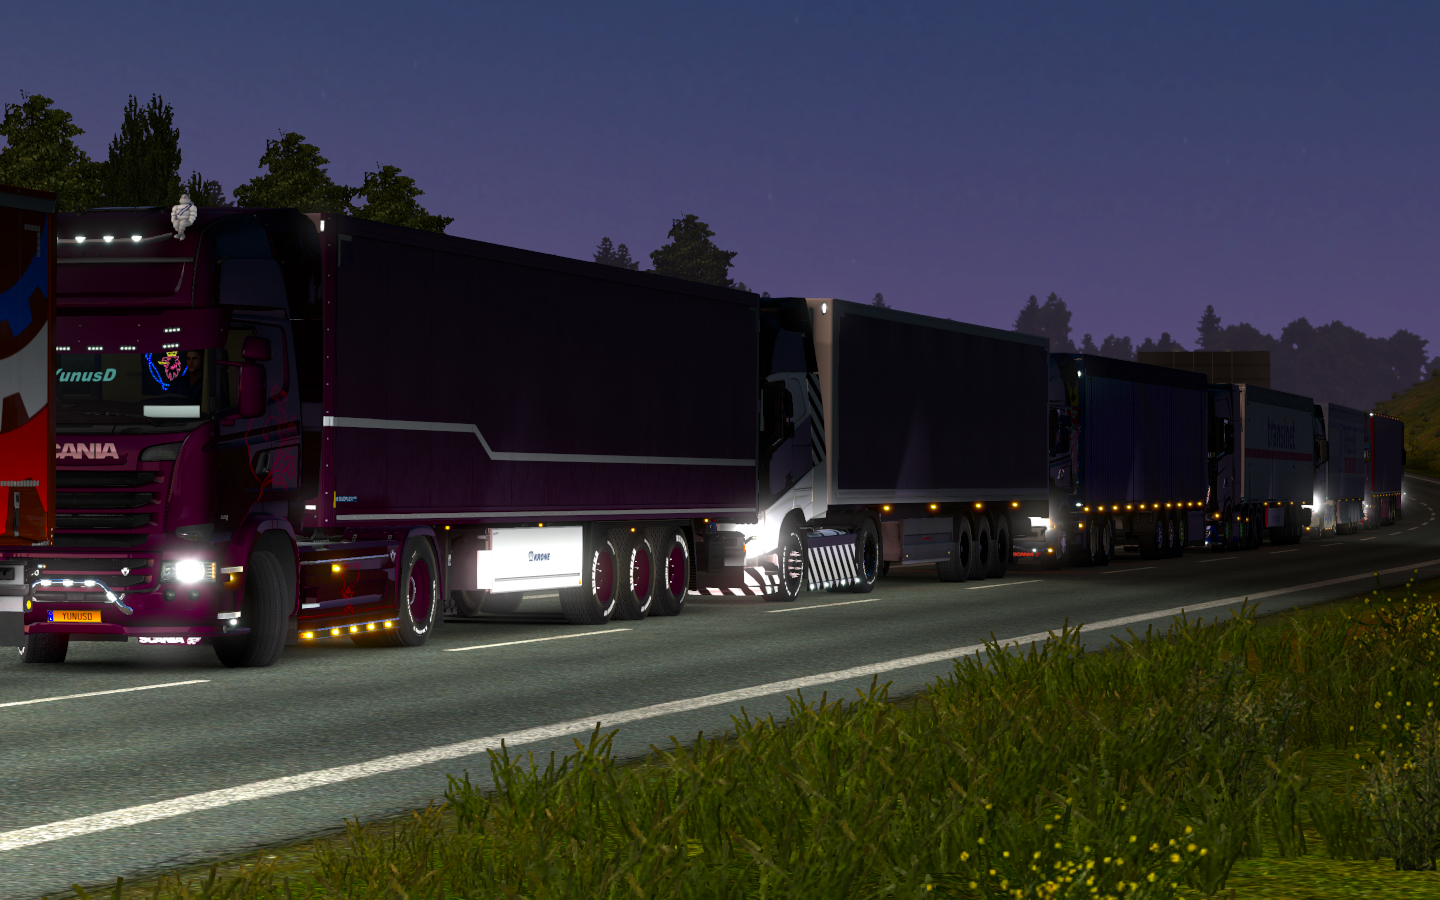 ets2_20190215_214015_00.png